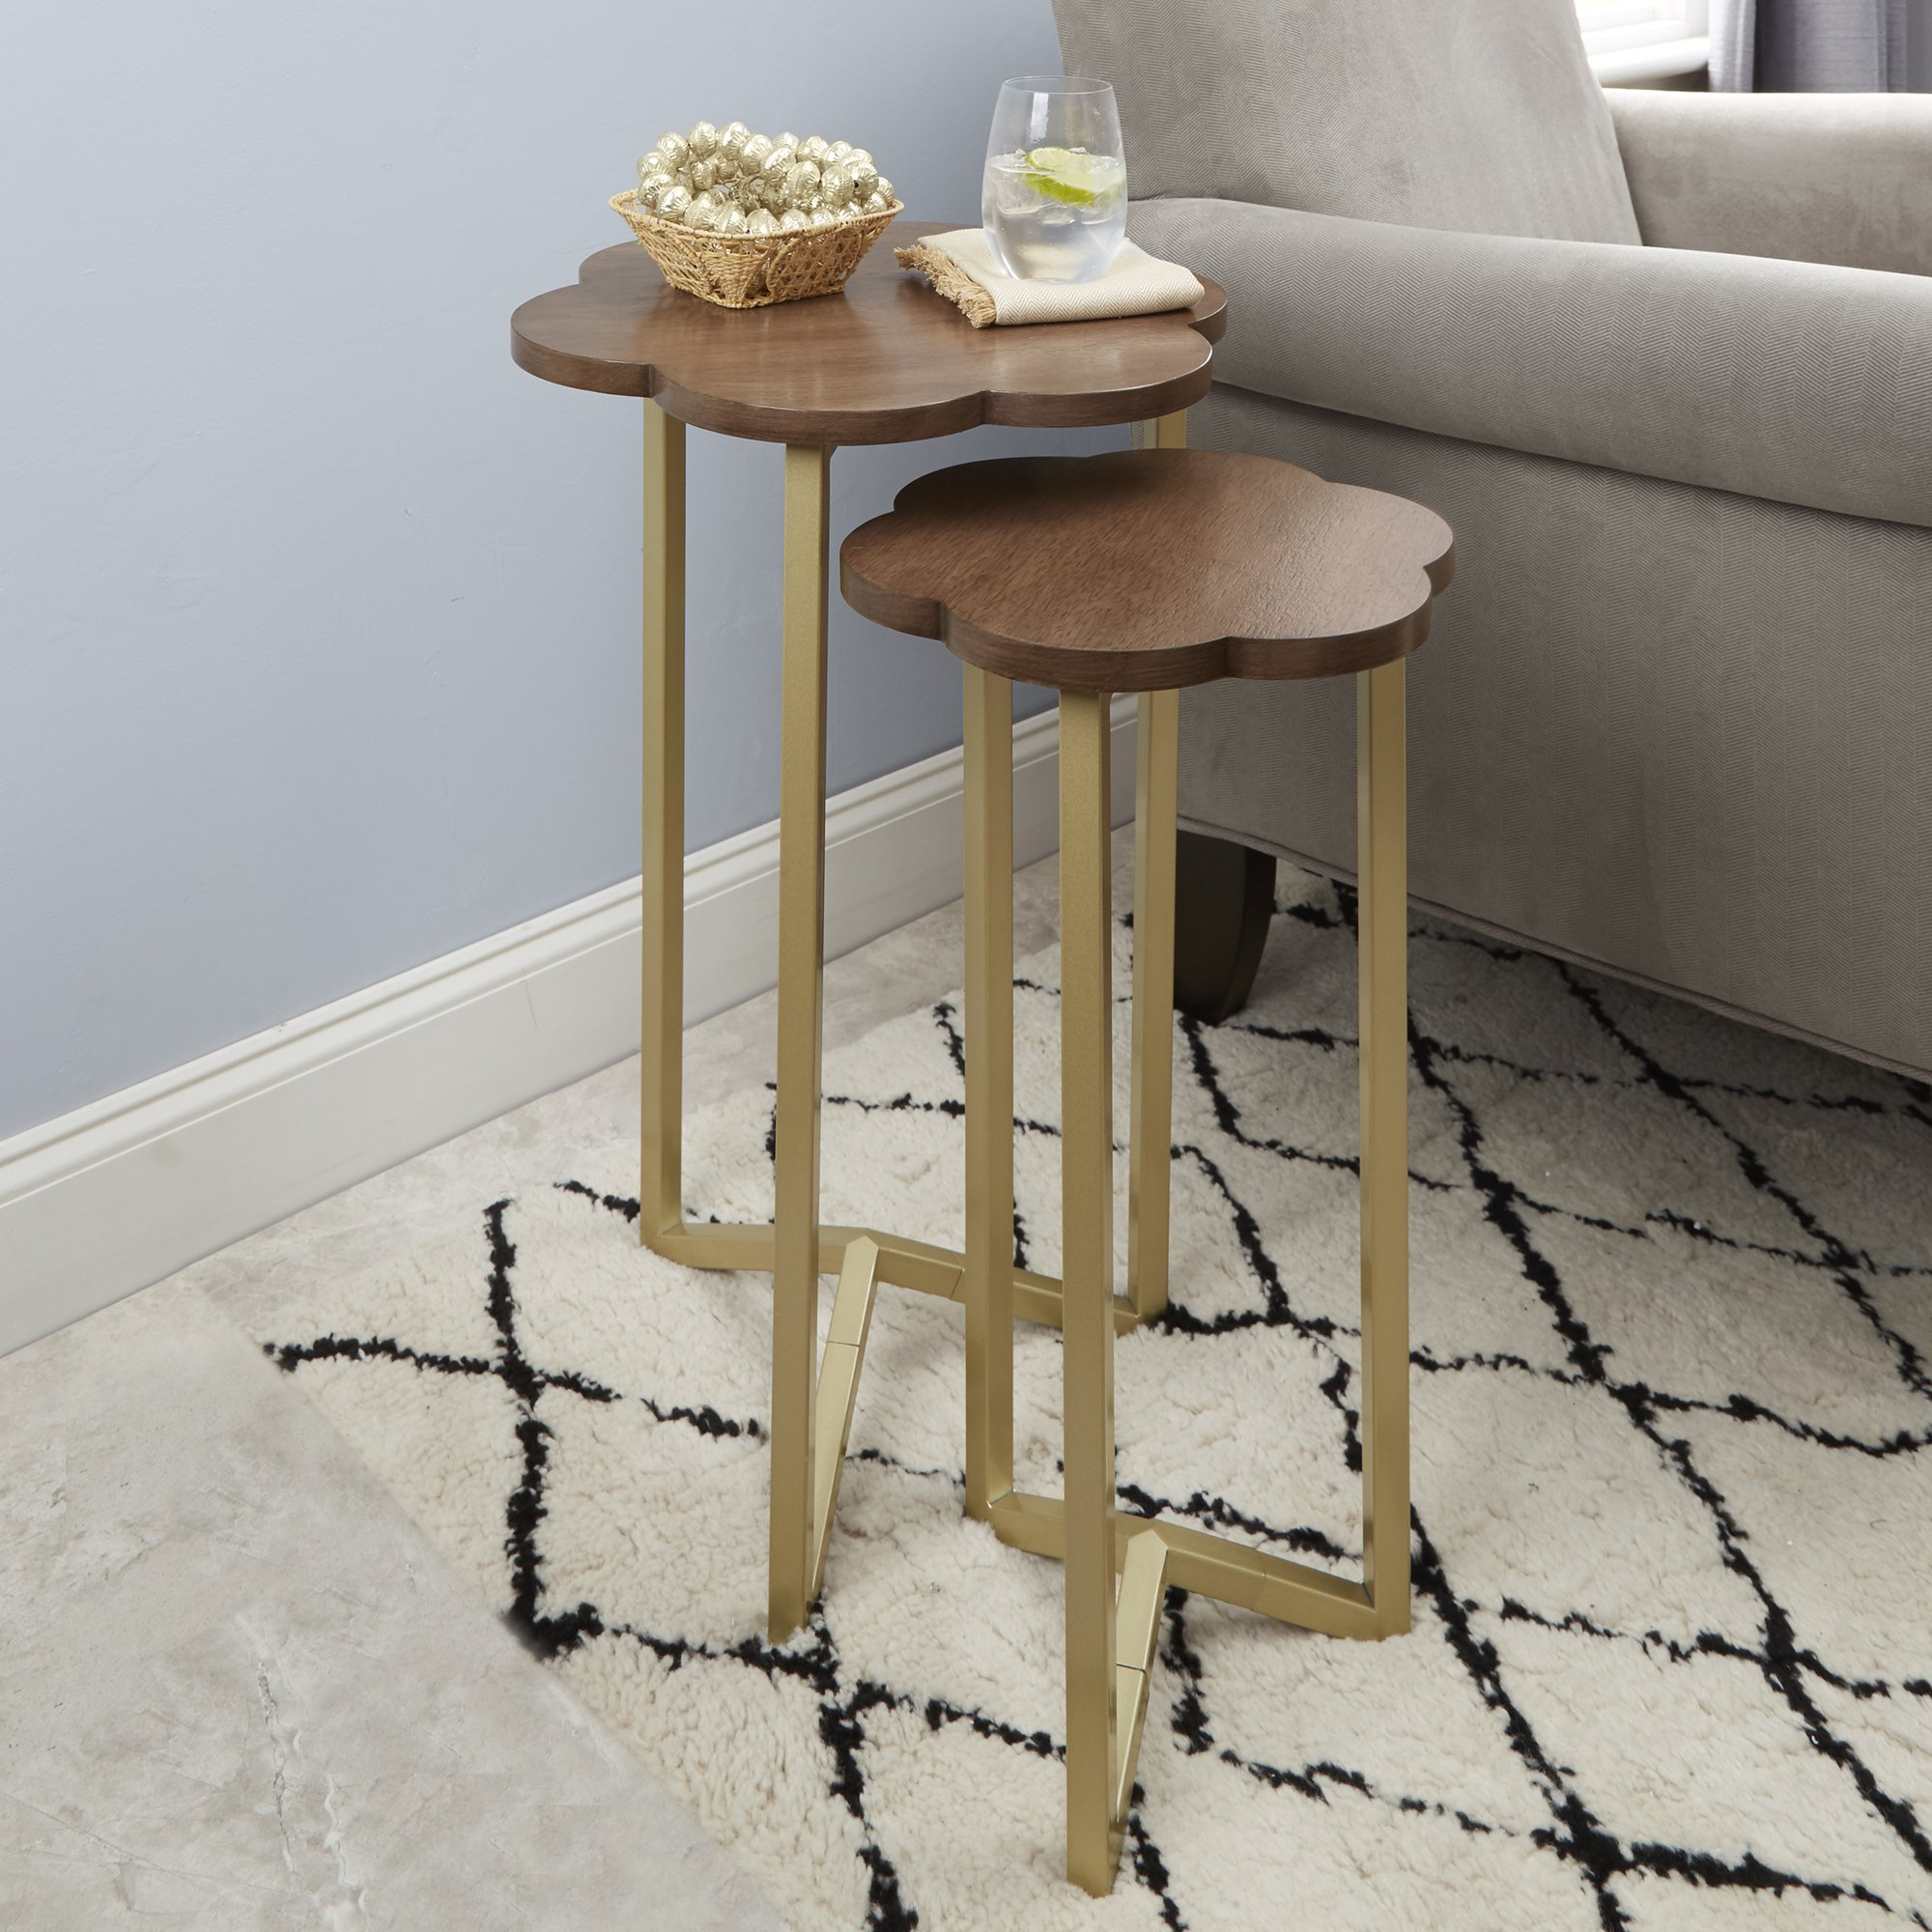 Silverwood FT1263-GLD-RGR Daphne Nesting Accent Tables (2pc), 17'' DIA x 27'' H by Silverwood (Image #4)